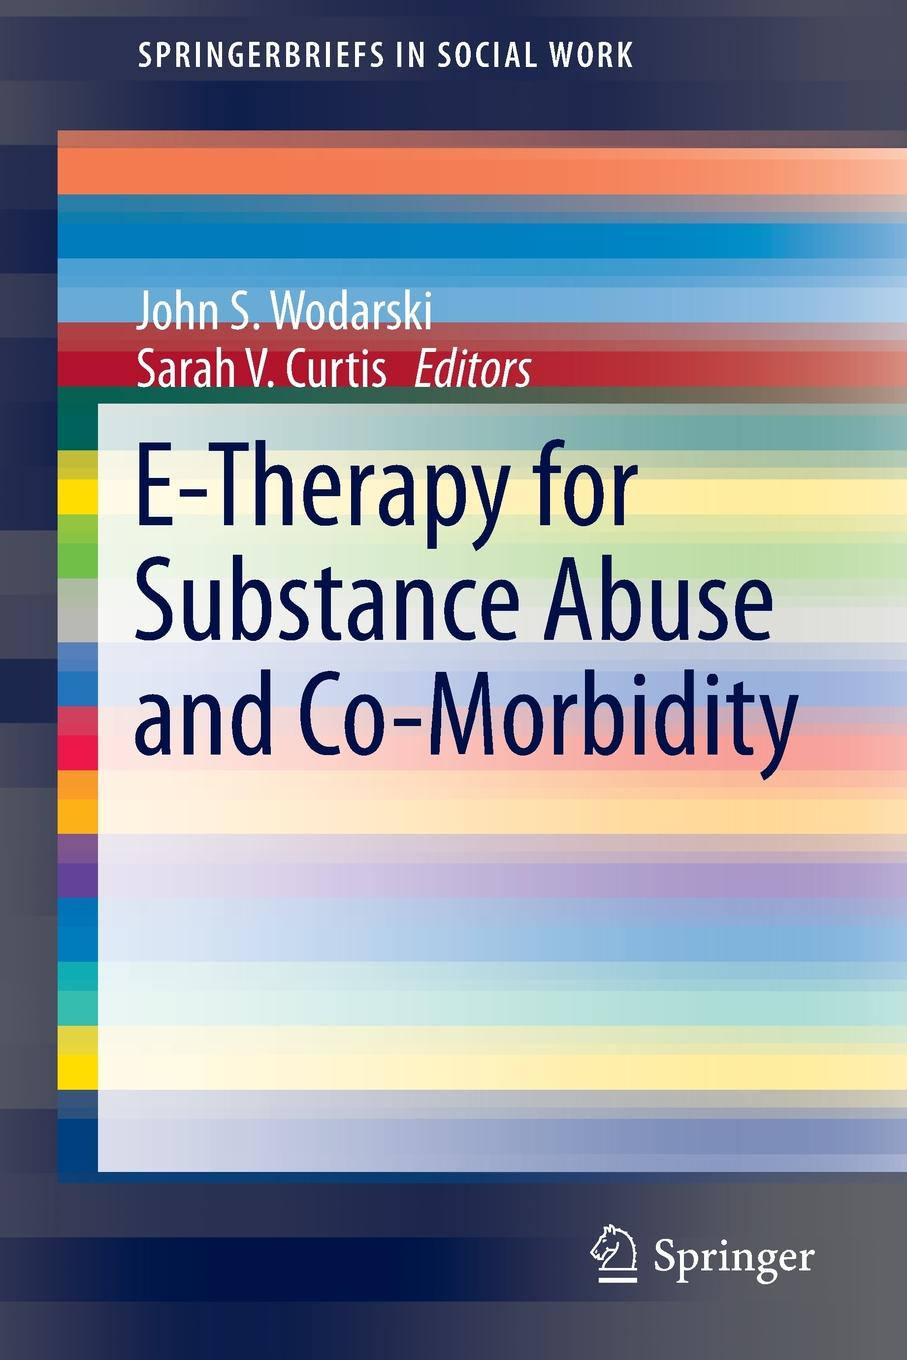 E-Therapy for Substance Abuse and Co-Morbidity maeve wallace irish students views on school substance abuse prevention programme